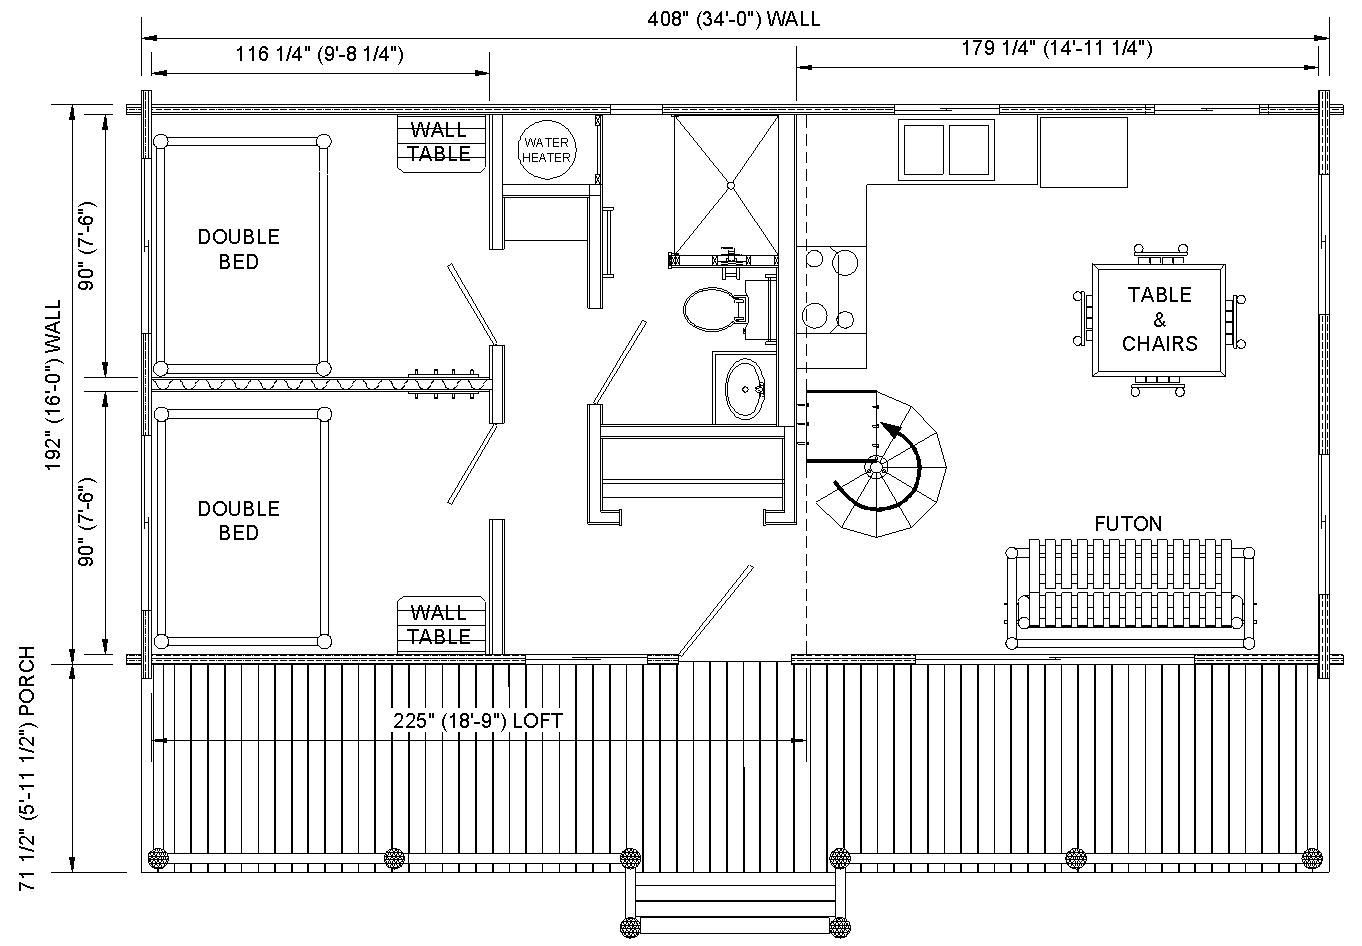 floor plans for cabins 16 u0027x34 u0027 with loft plus 6 u0027x34 u0027 porch side